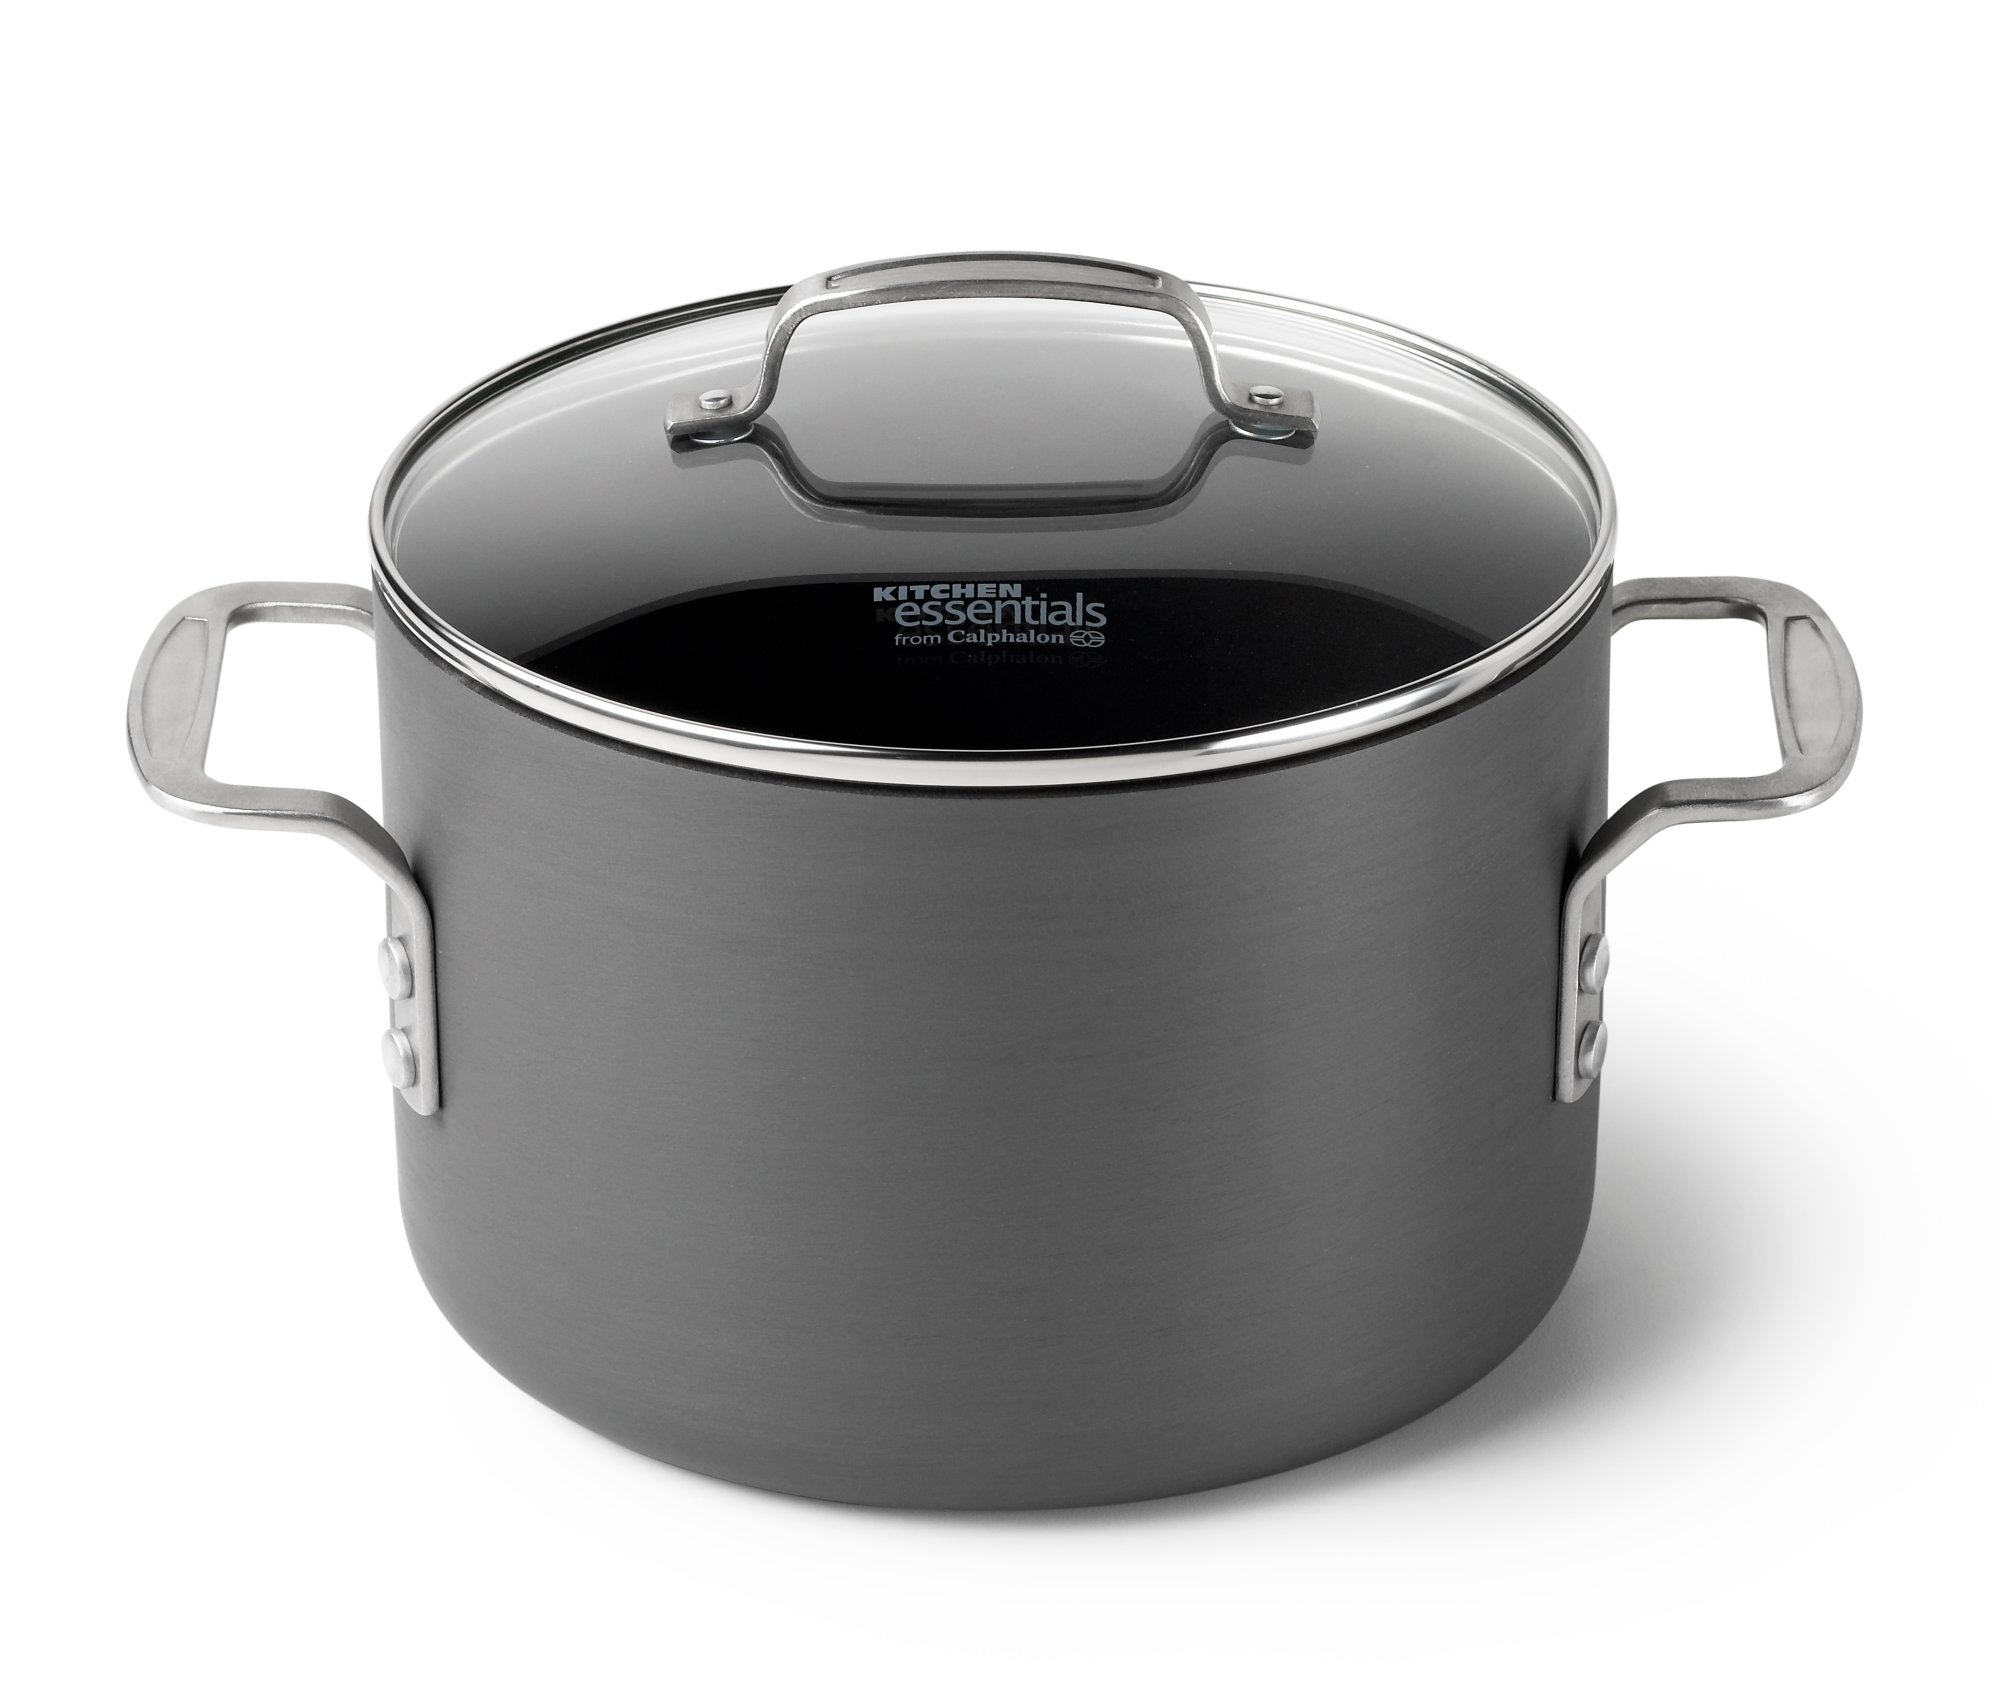 Calphalon Kitchen Essentials Nonstick 8 Qt Pasta Pot